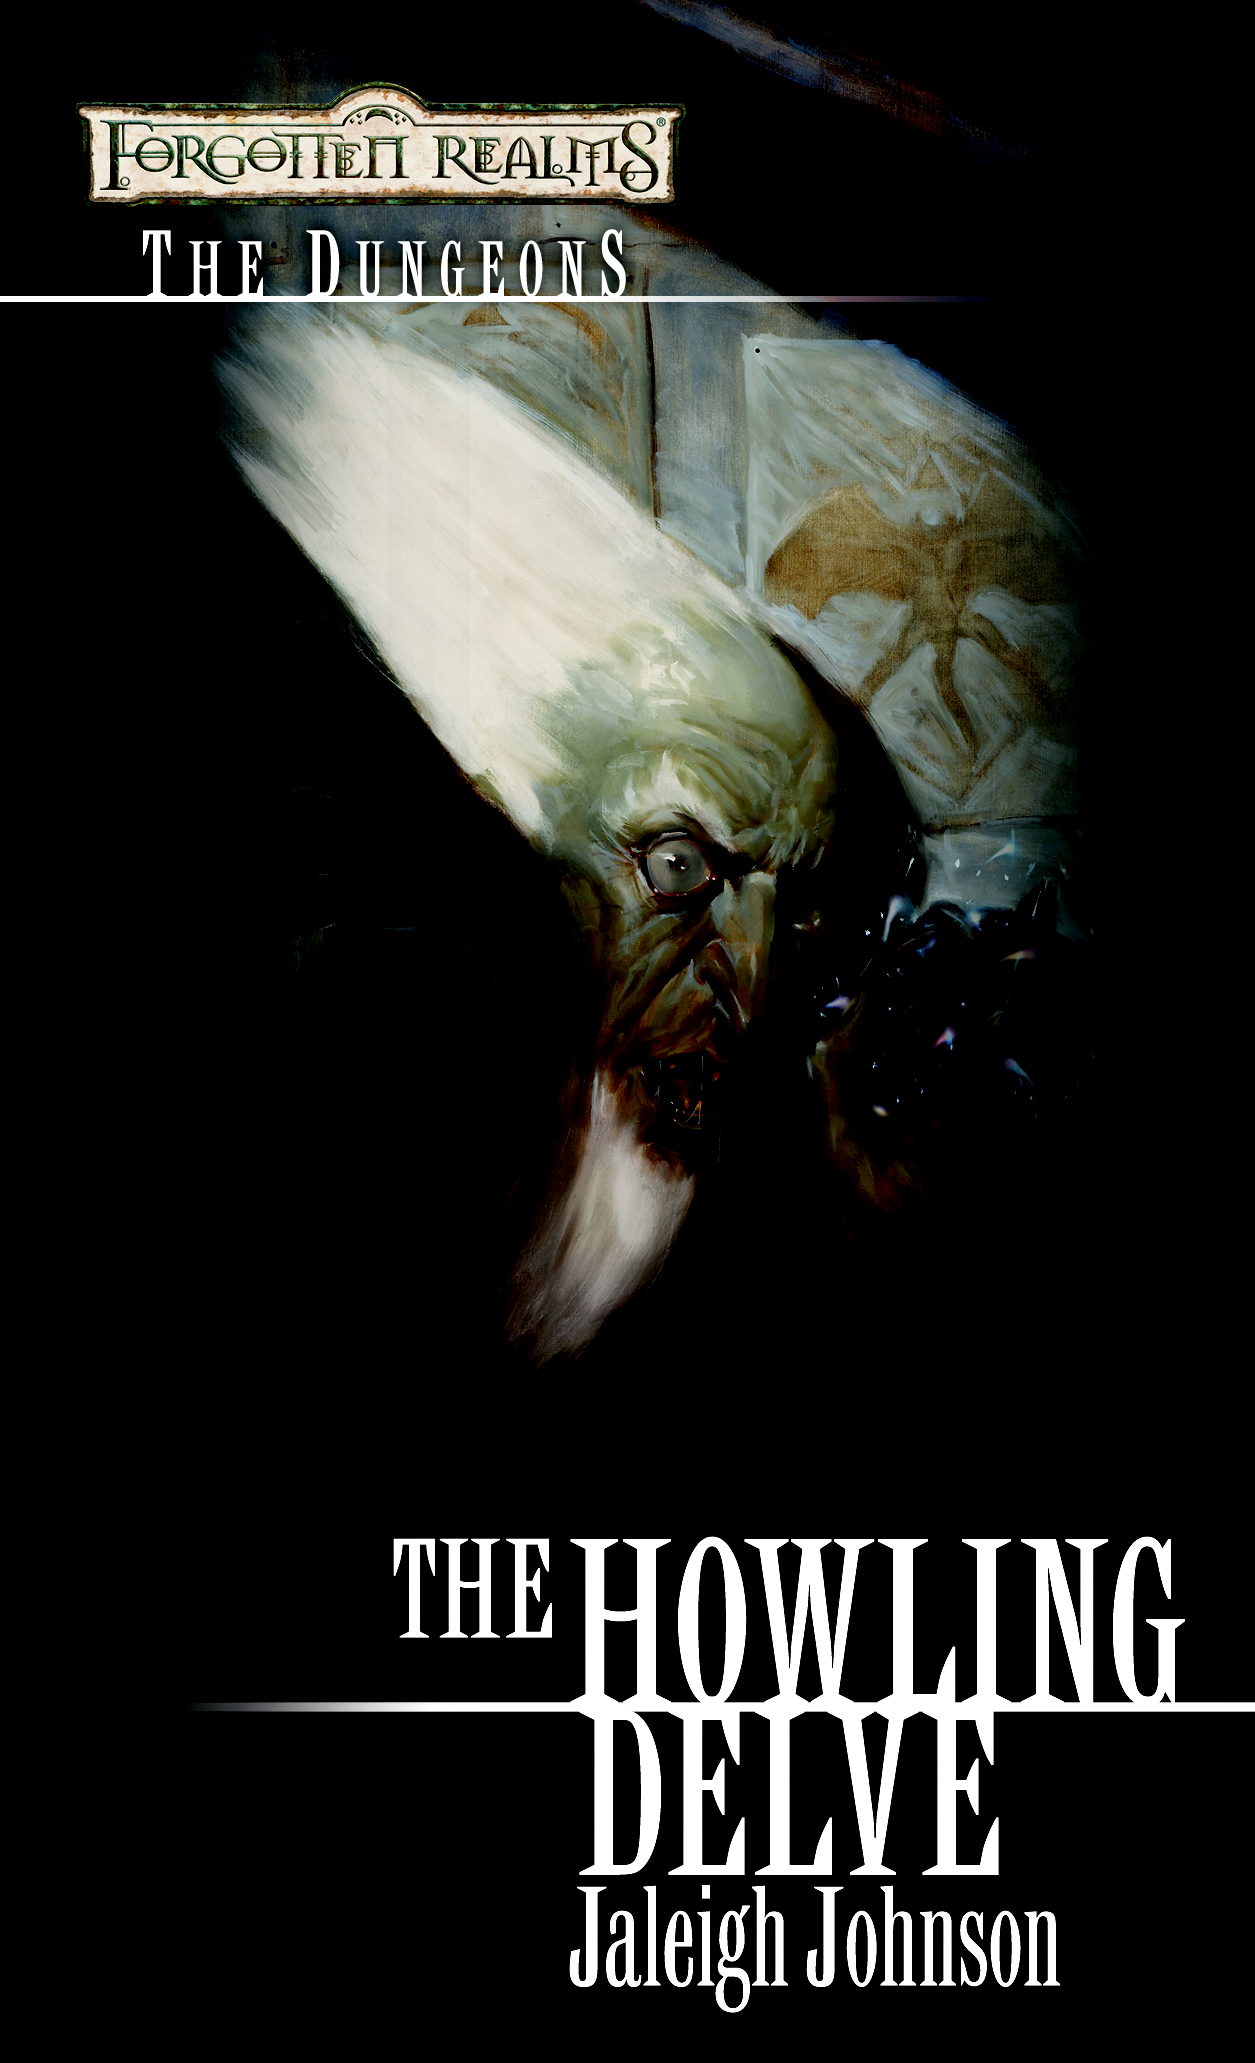 The Howling Delve